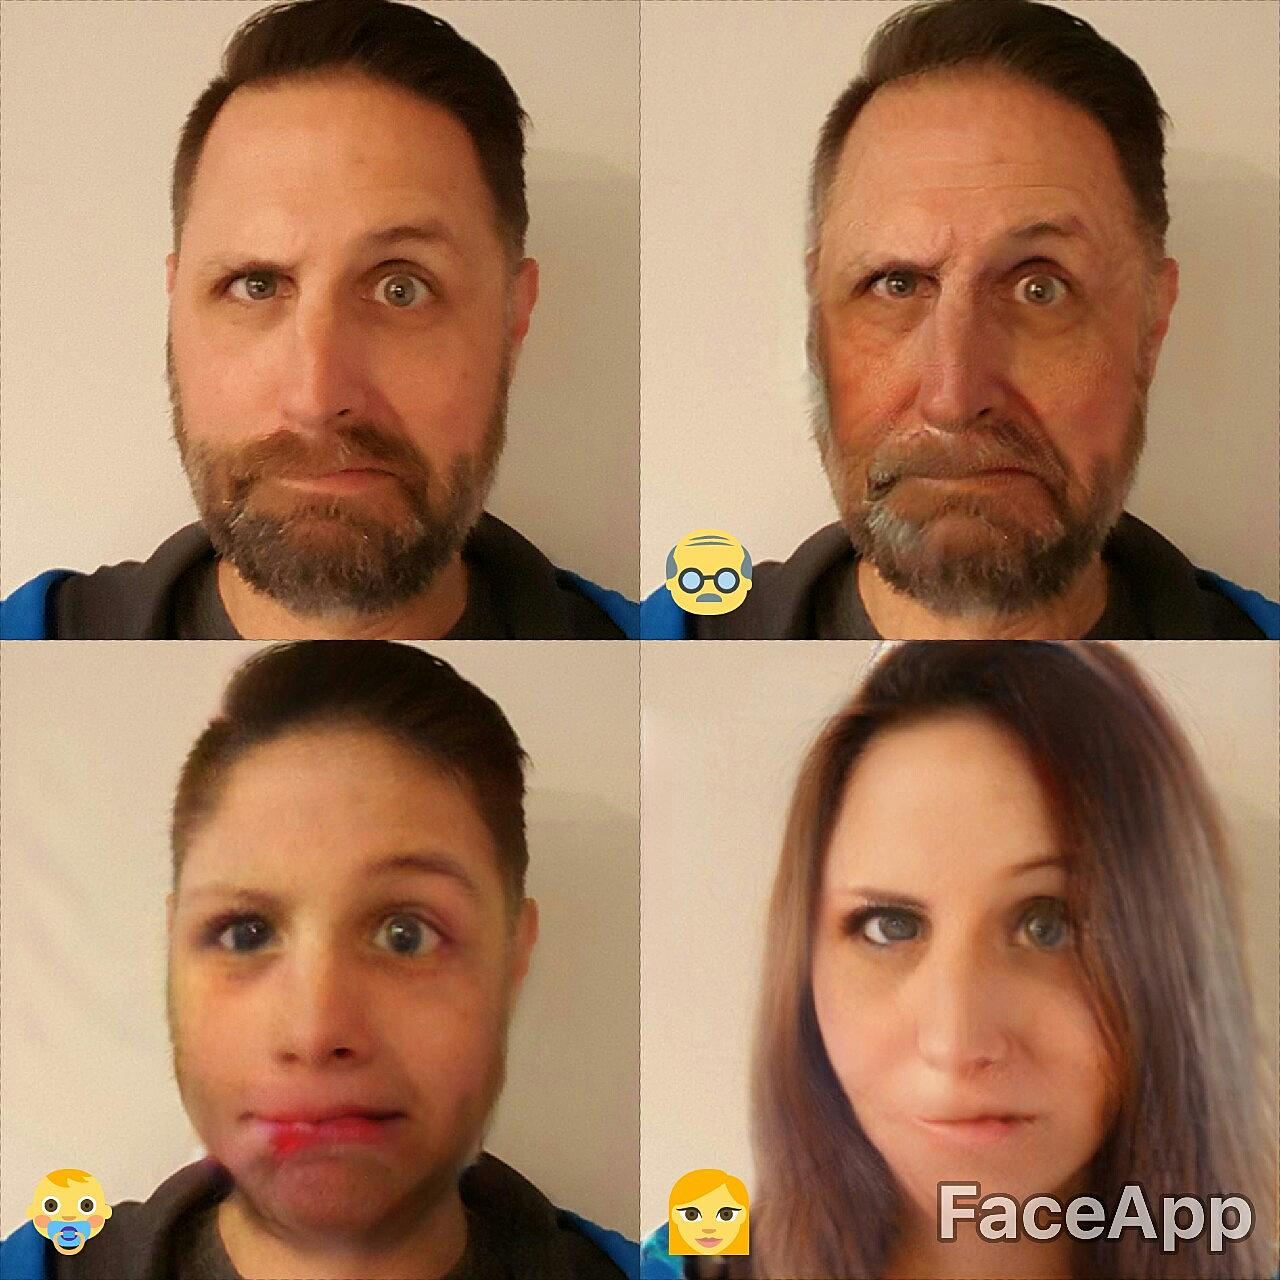 Bobby and Stacey Play With FaceApp - You Should Too!